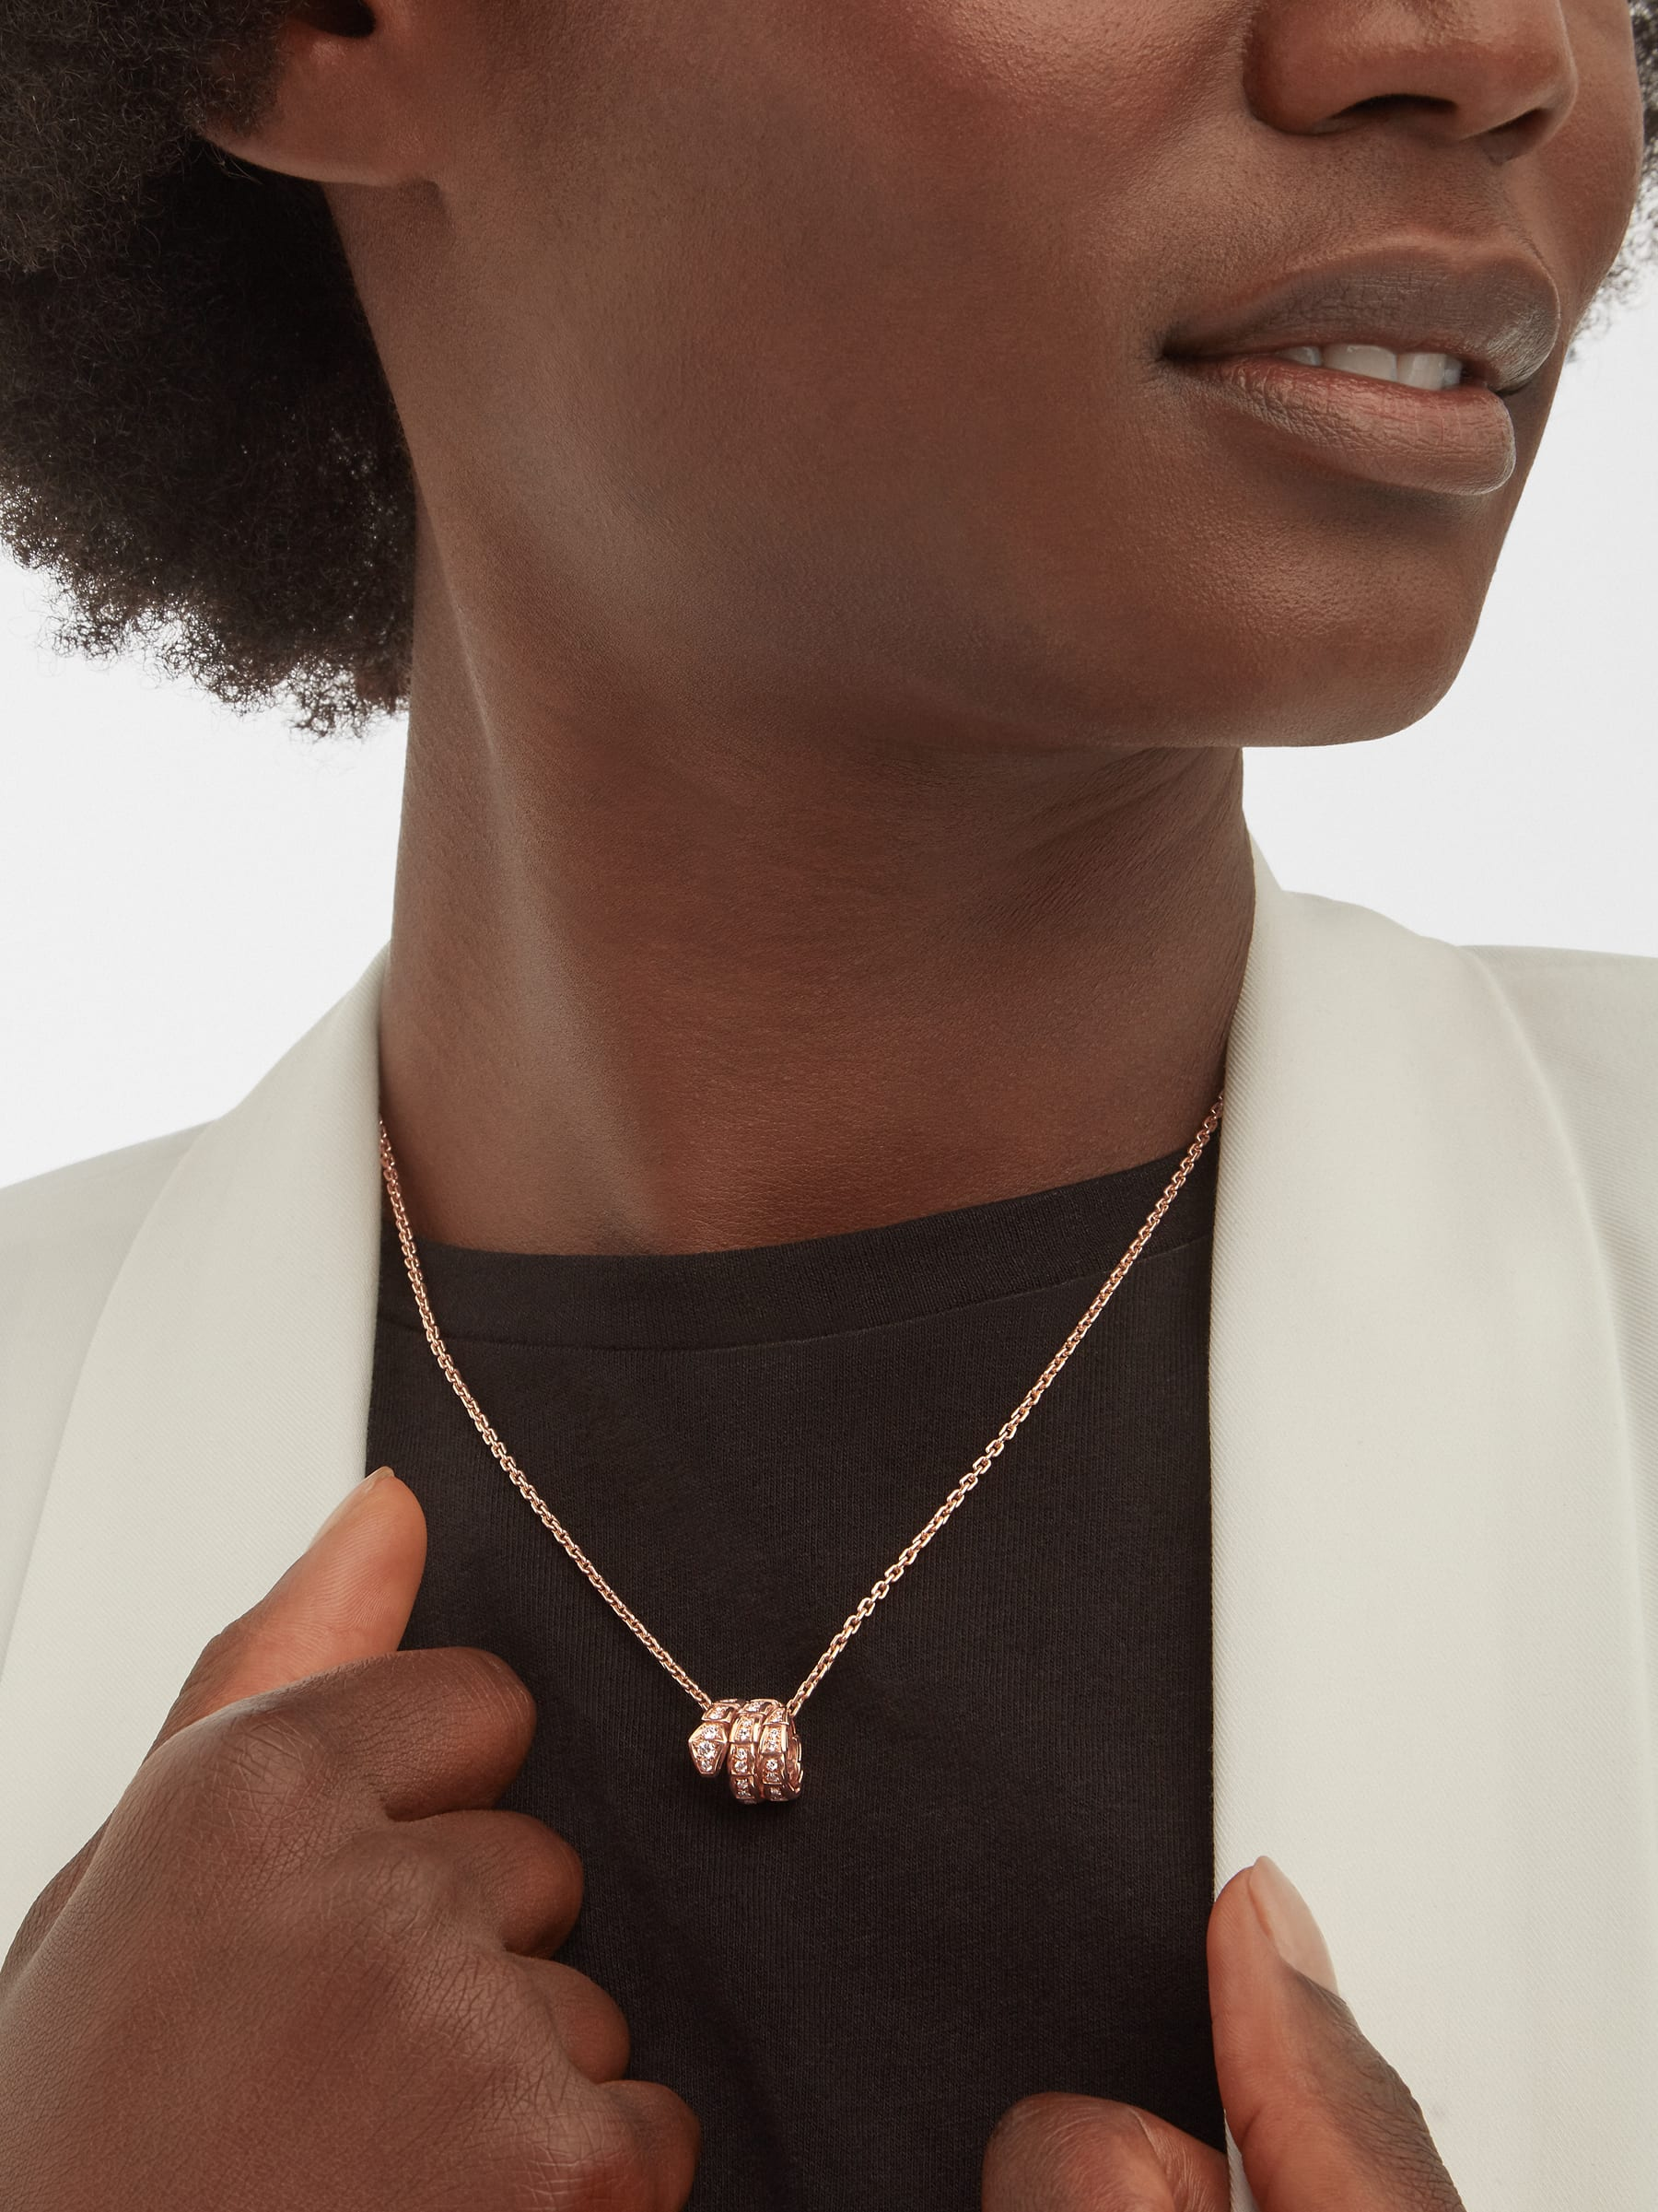 Serpenti Viper pendant necklace in 18 kt rose gold, set with pavé diamonds 357795 image 1